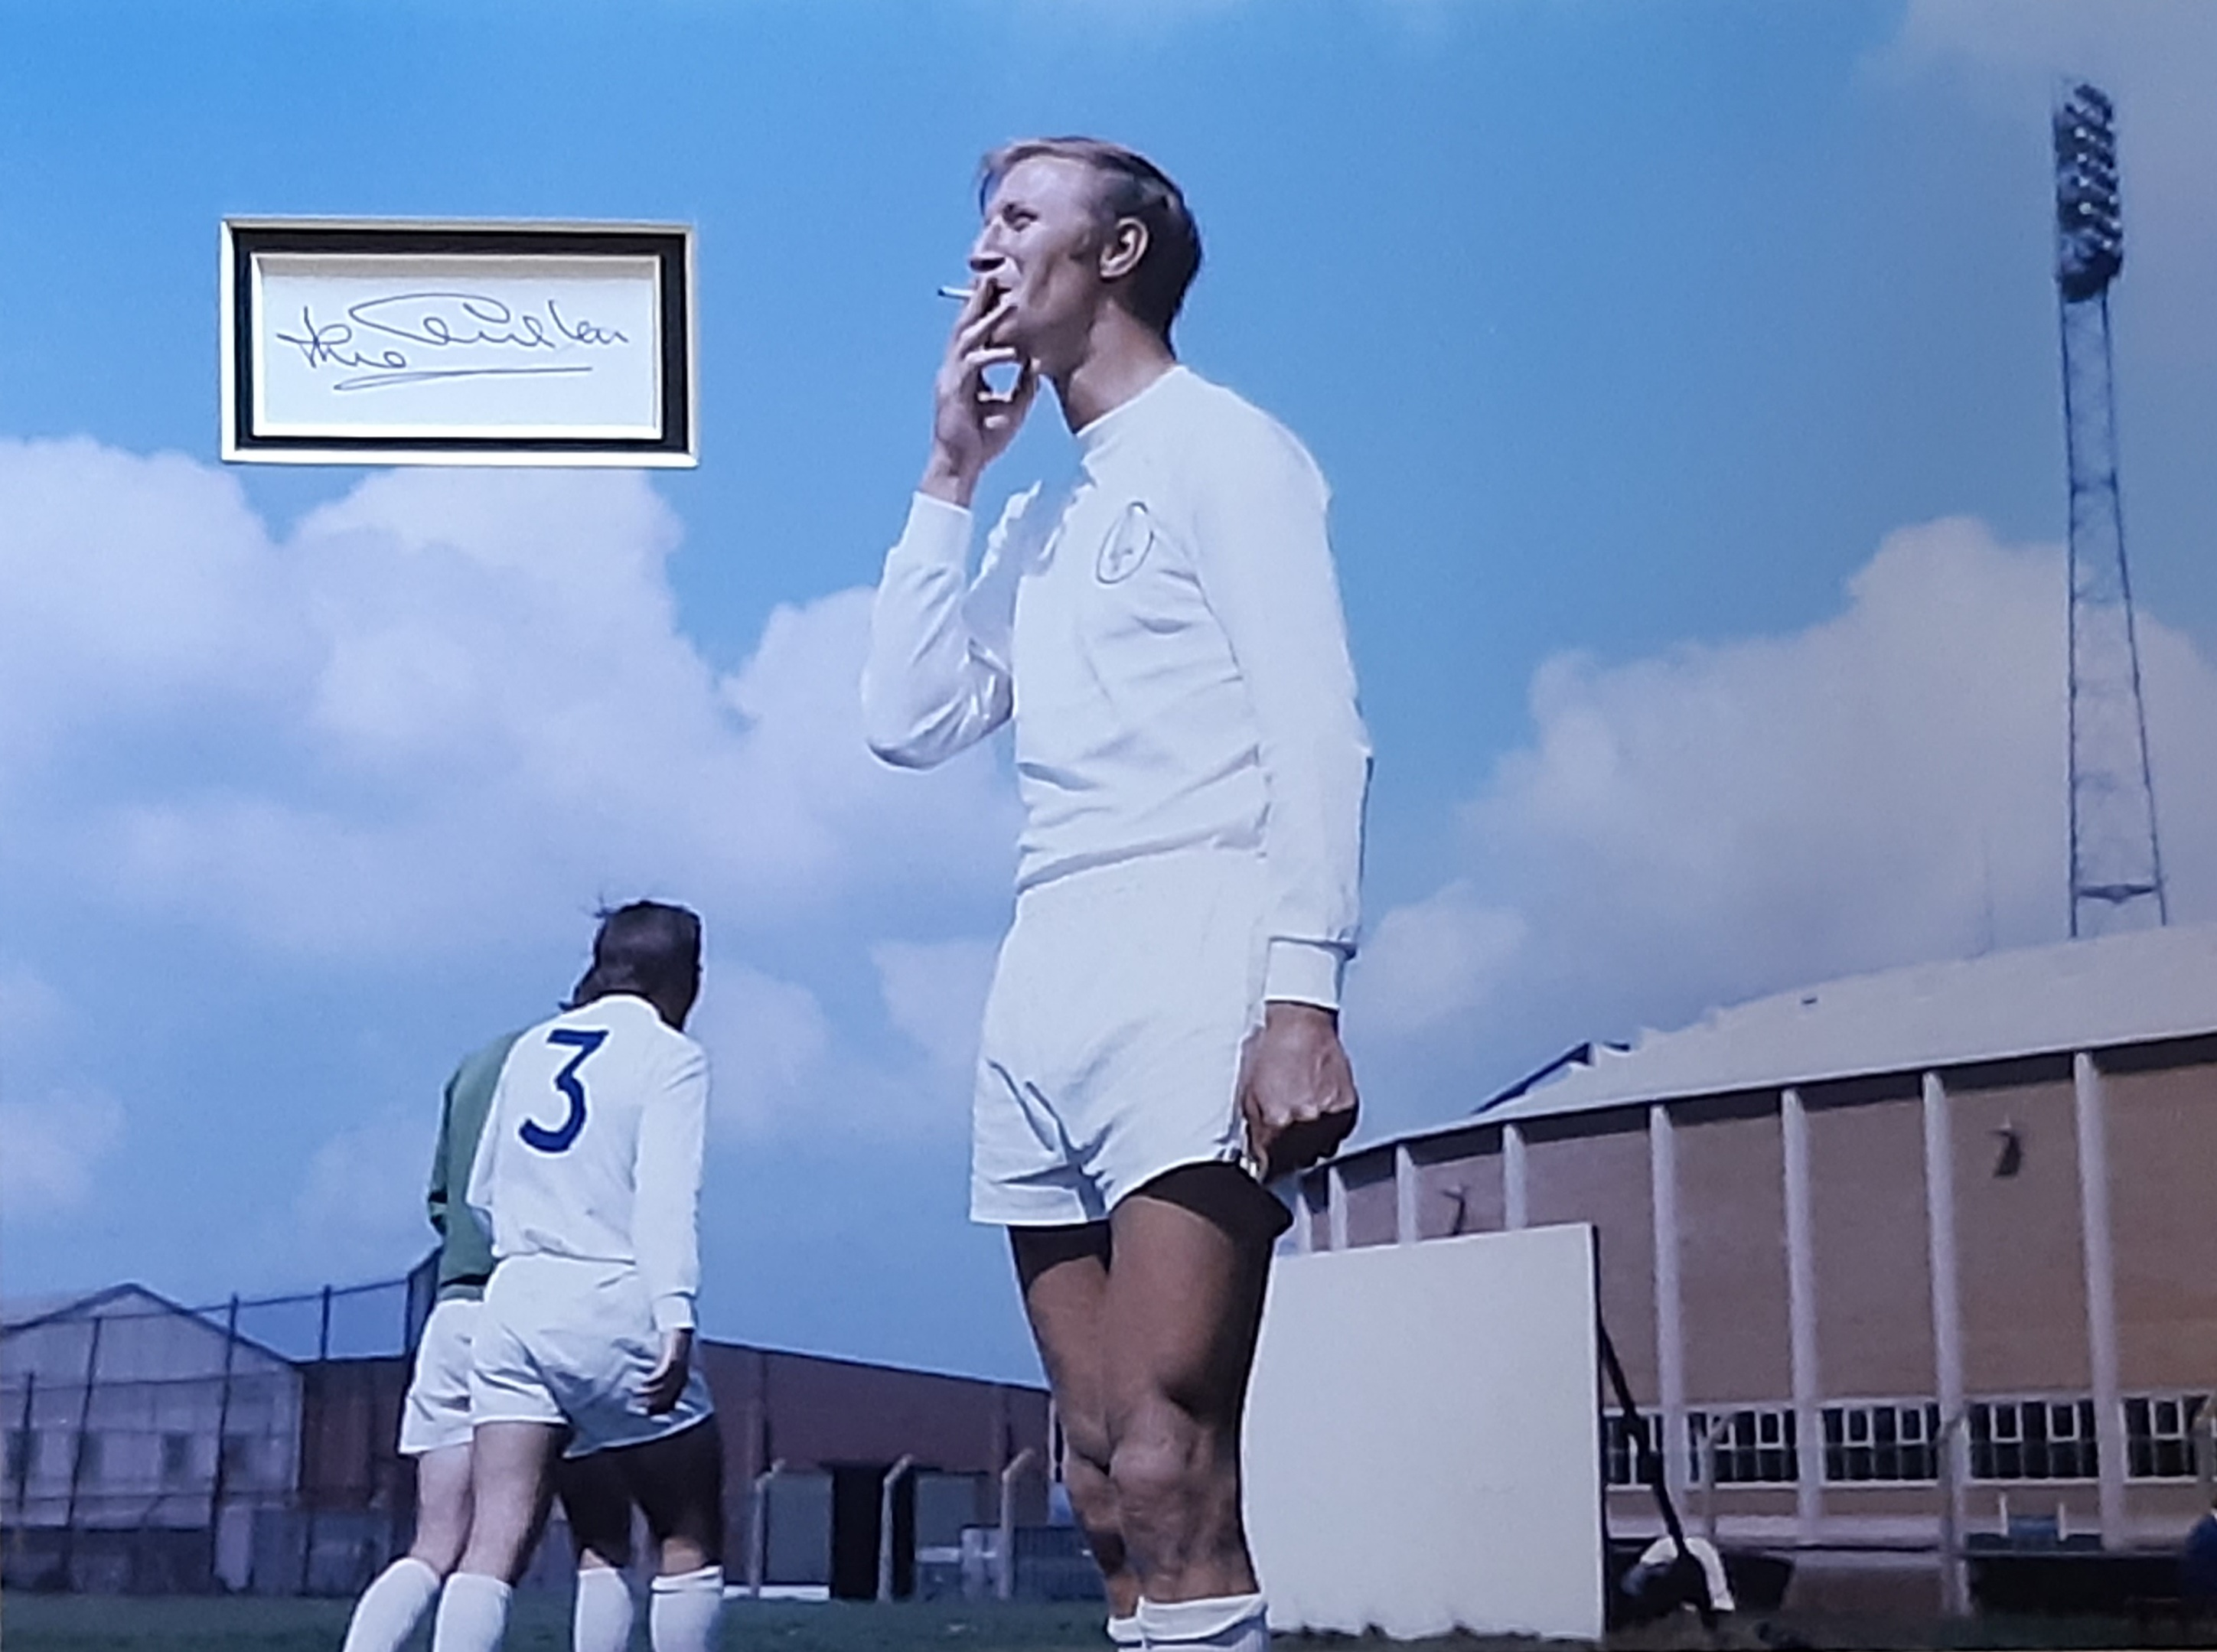 Jack Charlton Signed Leeds United Mounted Card & Photo